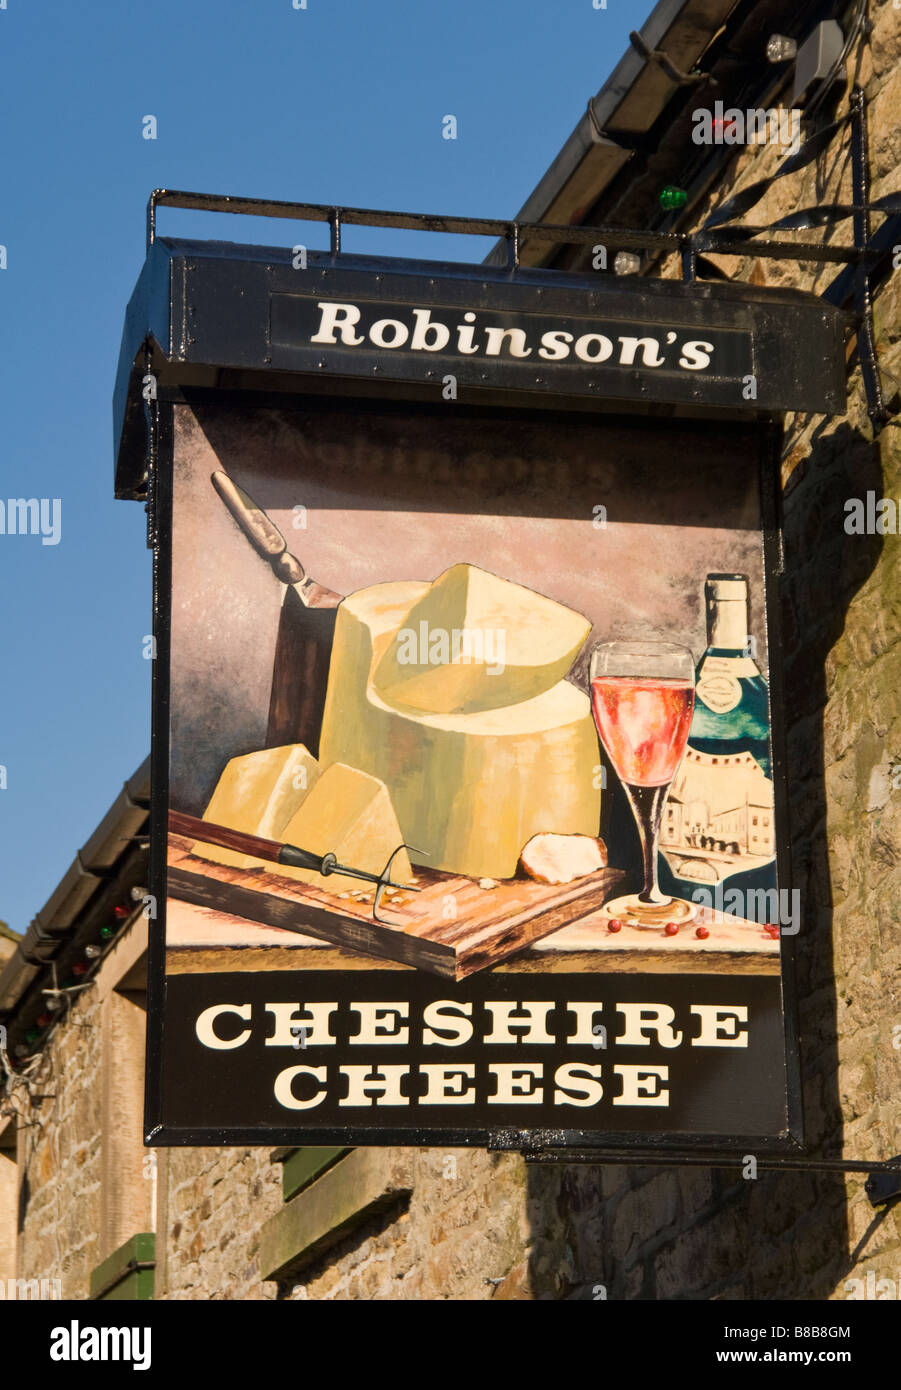 Cheshire Cheese Public House Signboard, Village of Longnor, Peak District National Park, Derbyshire, England, UK - Stock Image